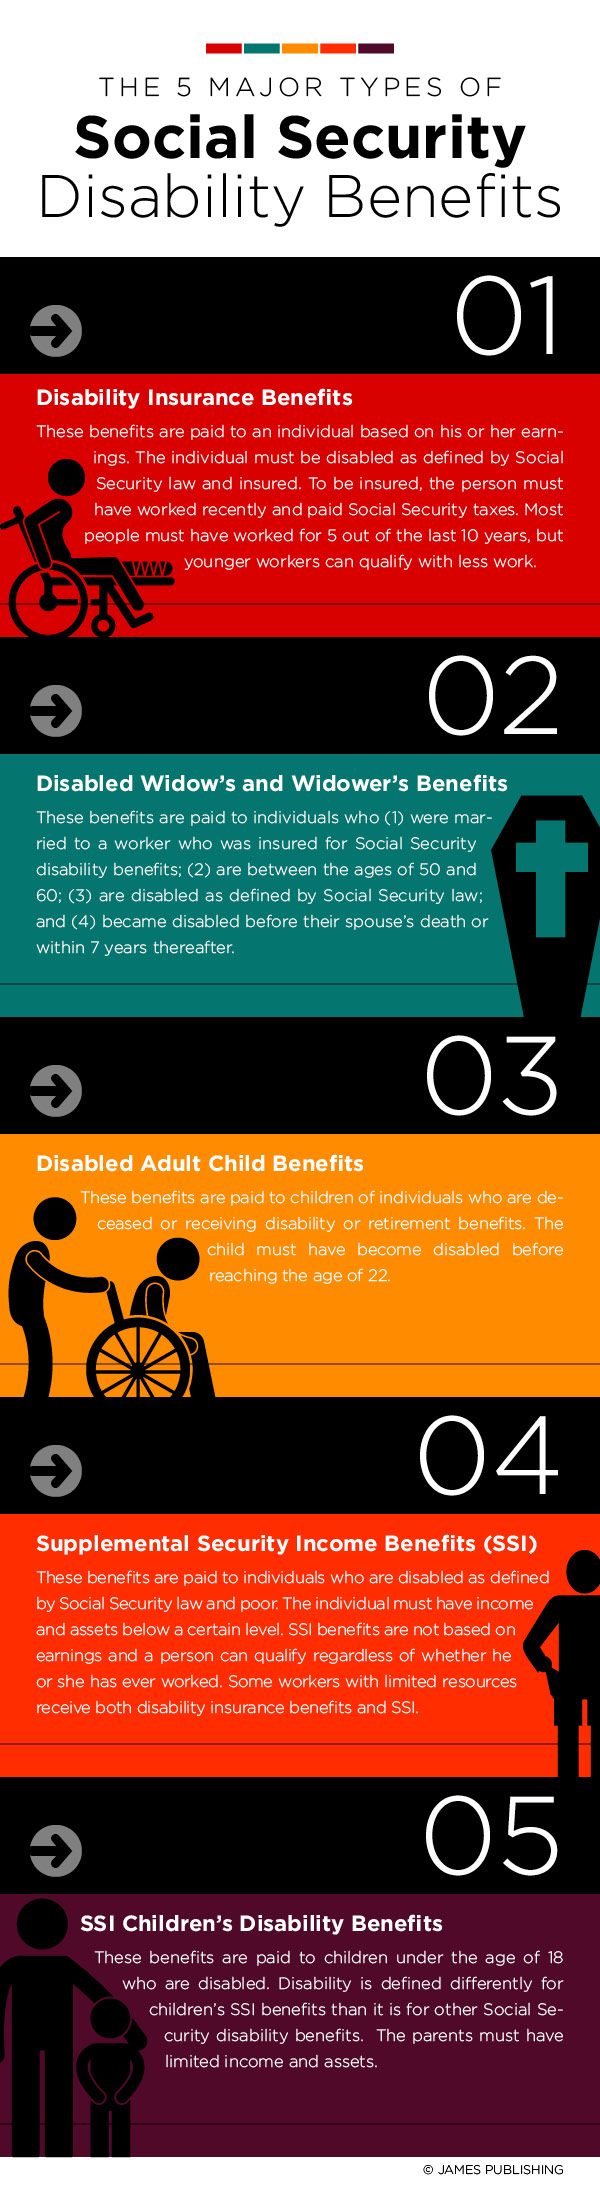 The Major Types Of Social Security Benefits Cj Henry Law Firm Social Security Disability Benefits Social Security Disability Disability Benefit